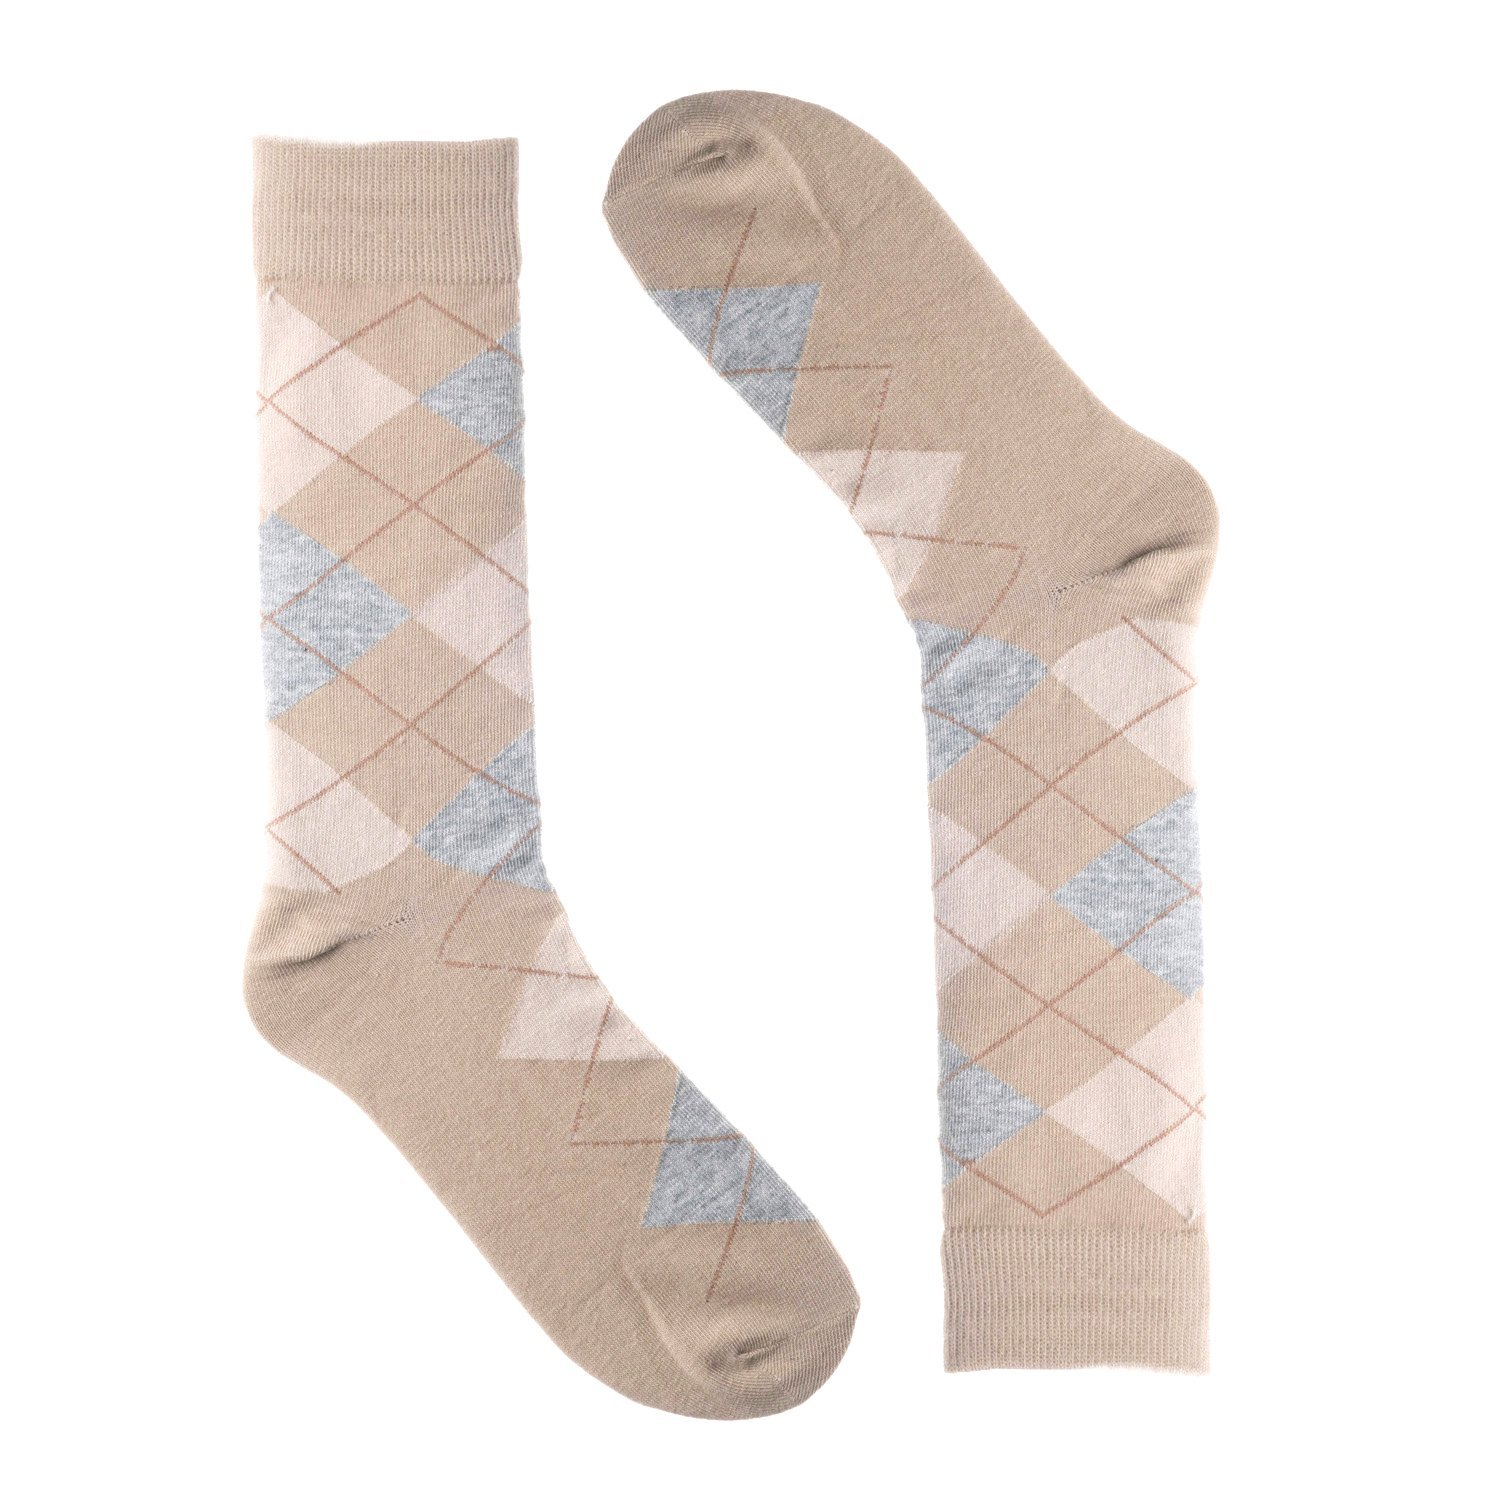 aaa367237a13 Get Quotations · Ivory + Mason Argyle Dress Socks for Men - Tan Grey Color  - Cotton - (